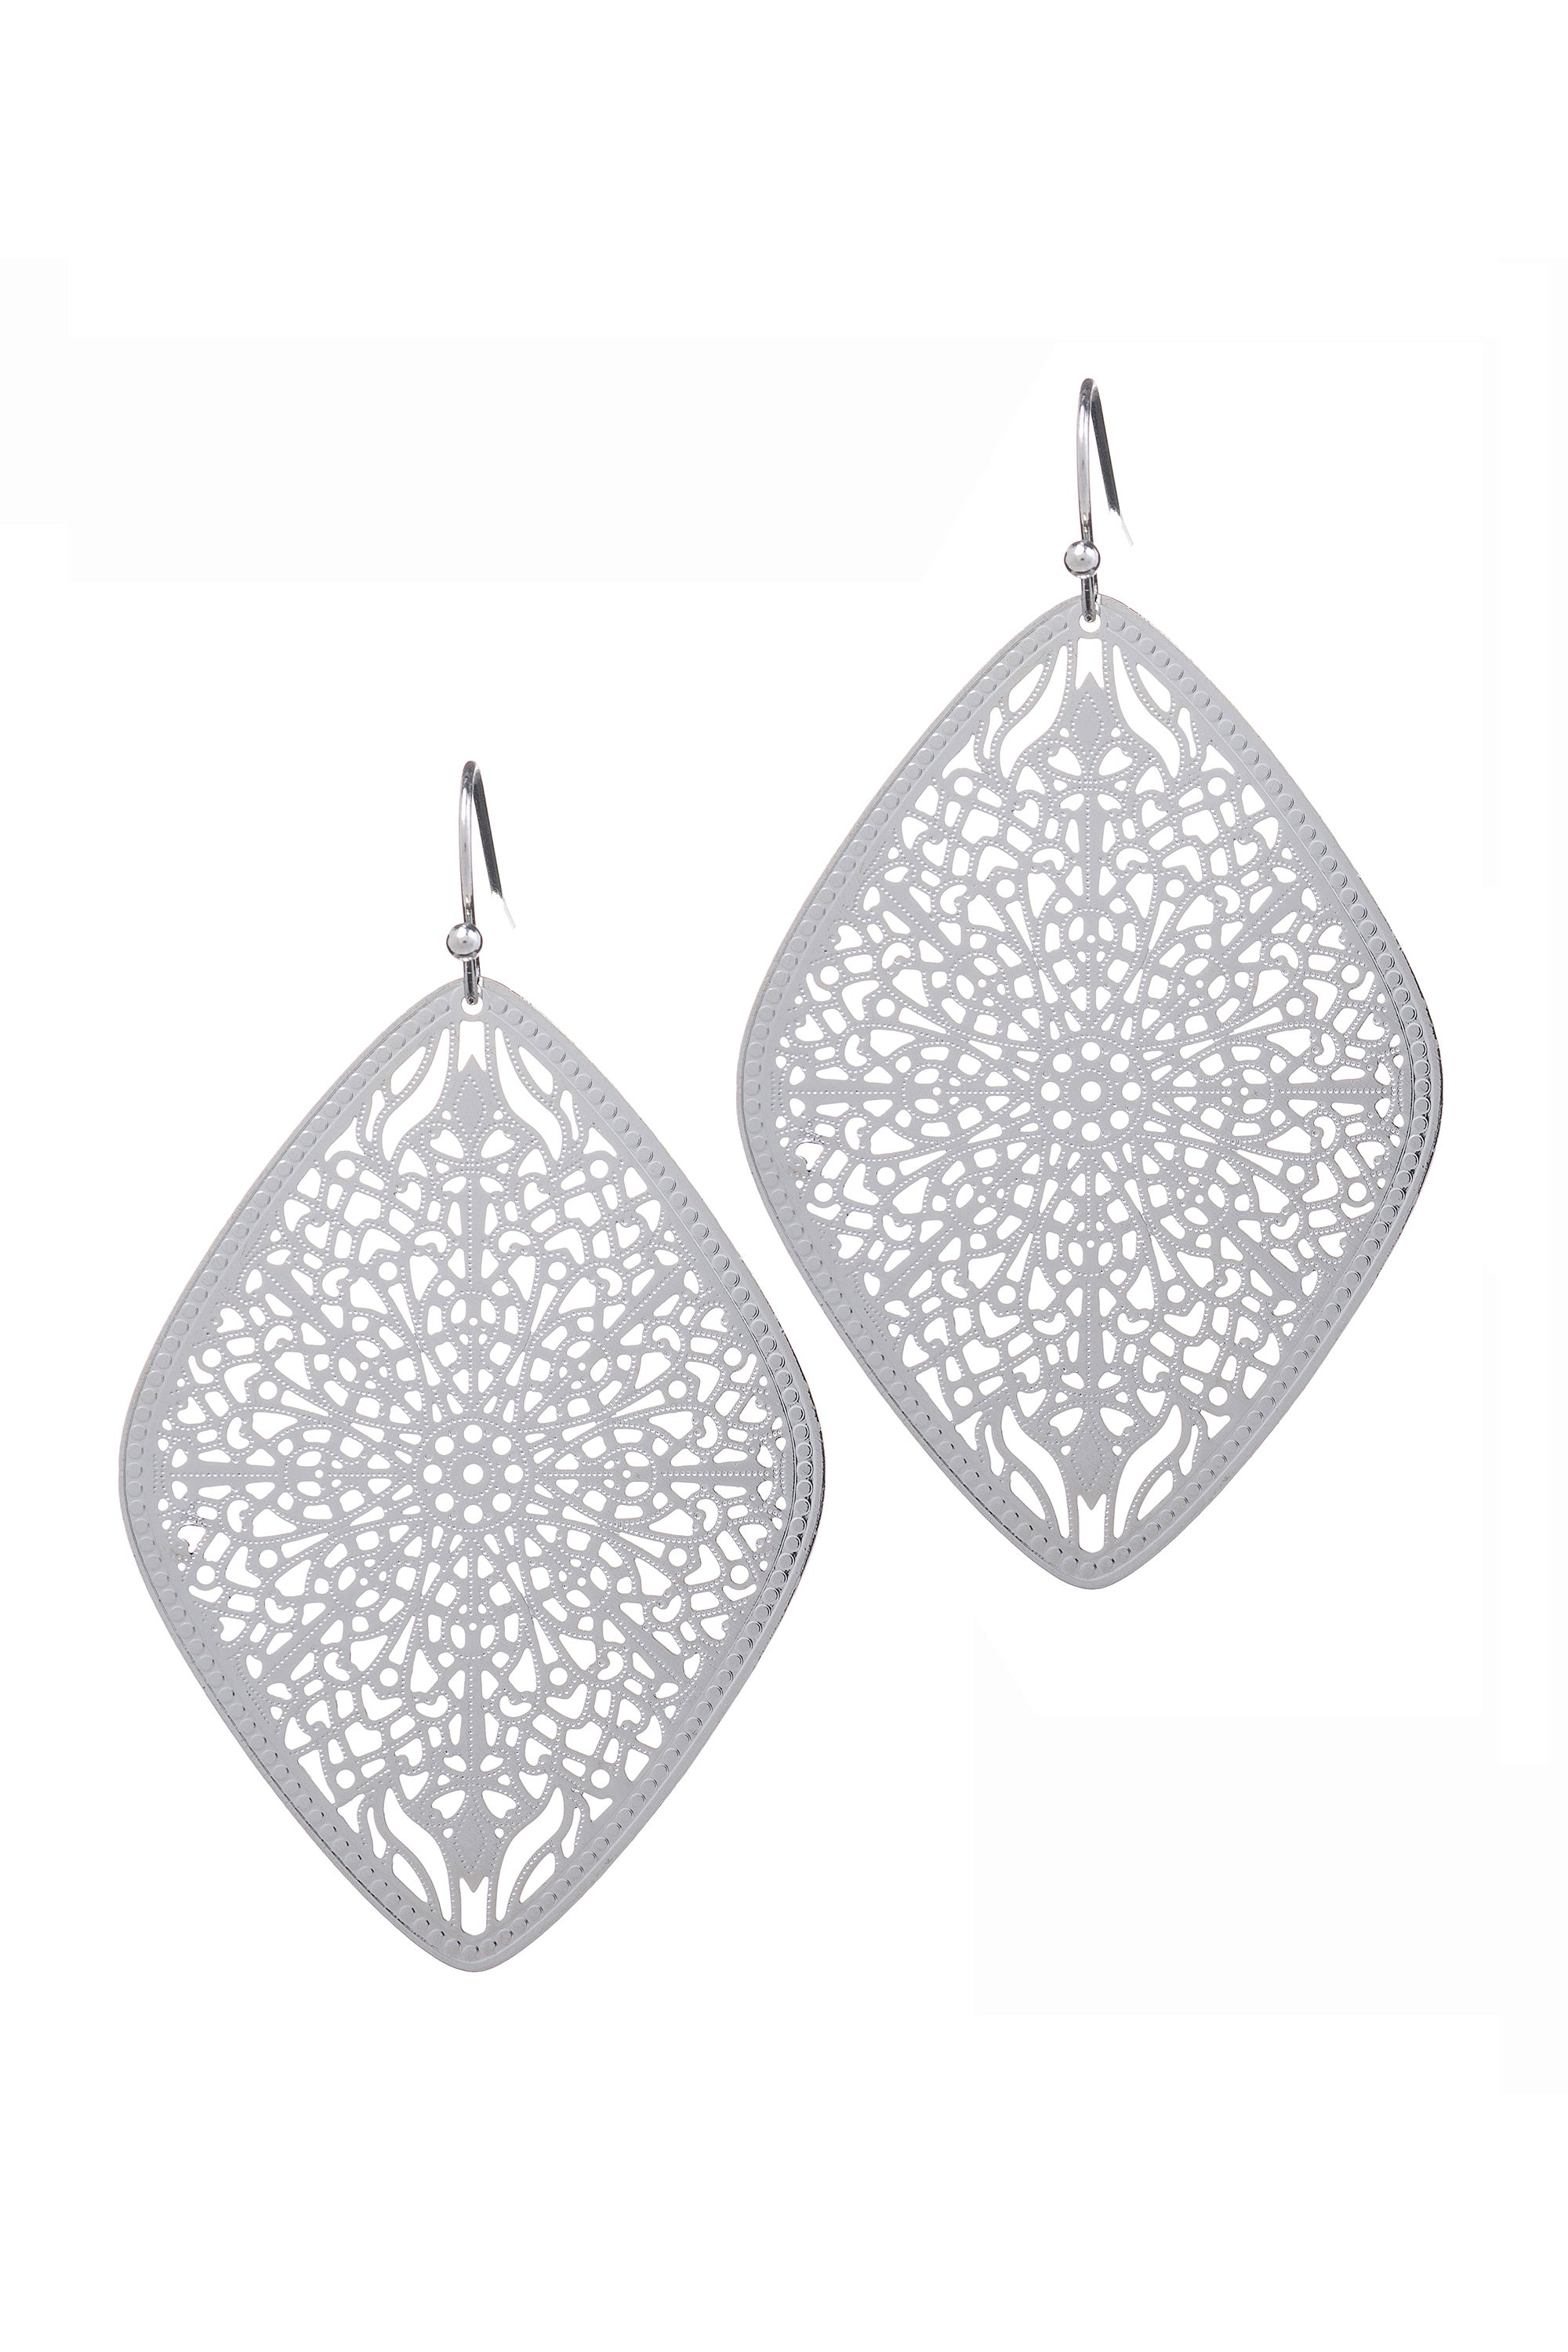 Type 2 Diamond Lace Earrings